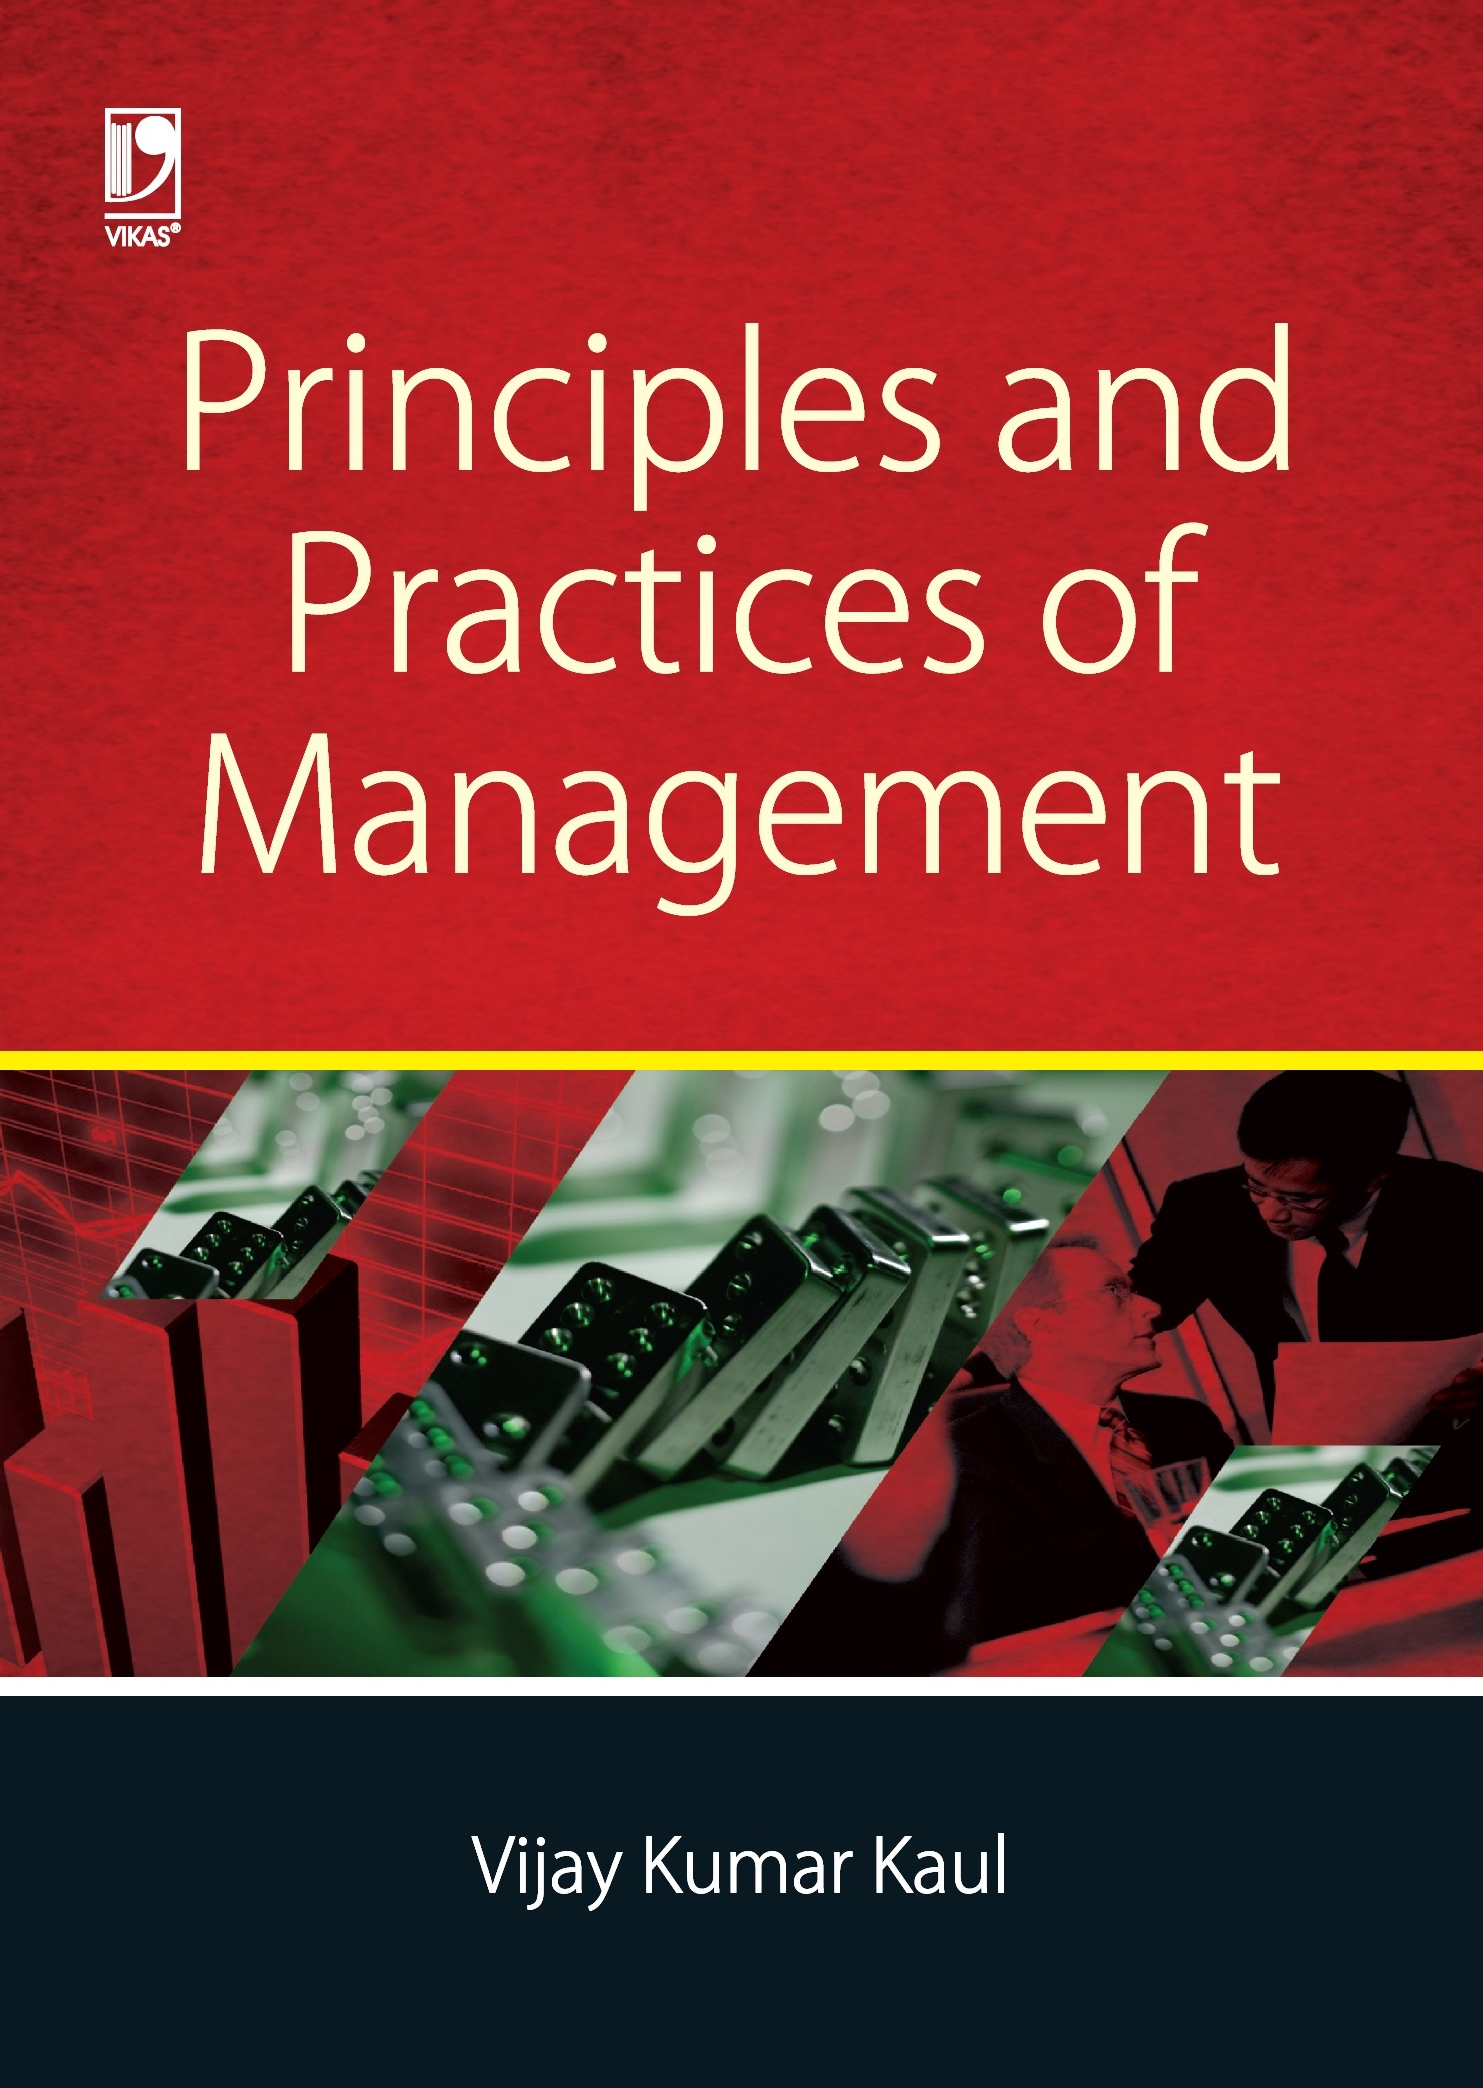 PRINCIPLES AND PRACTICES OF MANAGEMENT by  VIJAY KUMAR KAUL